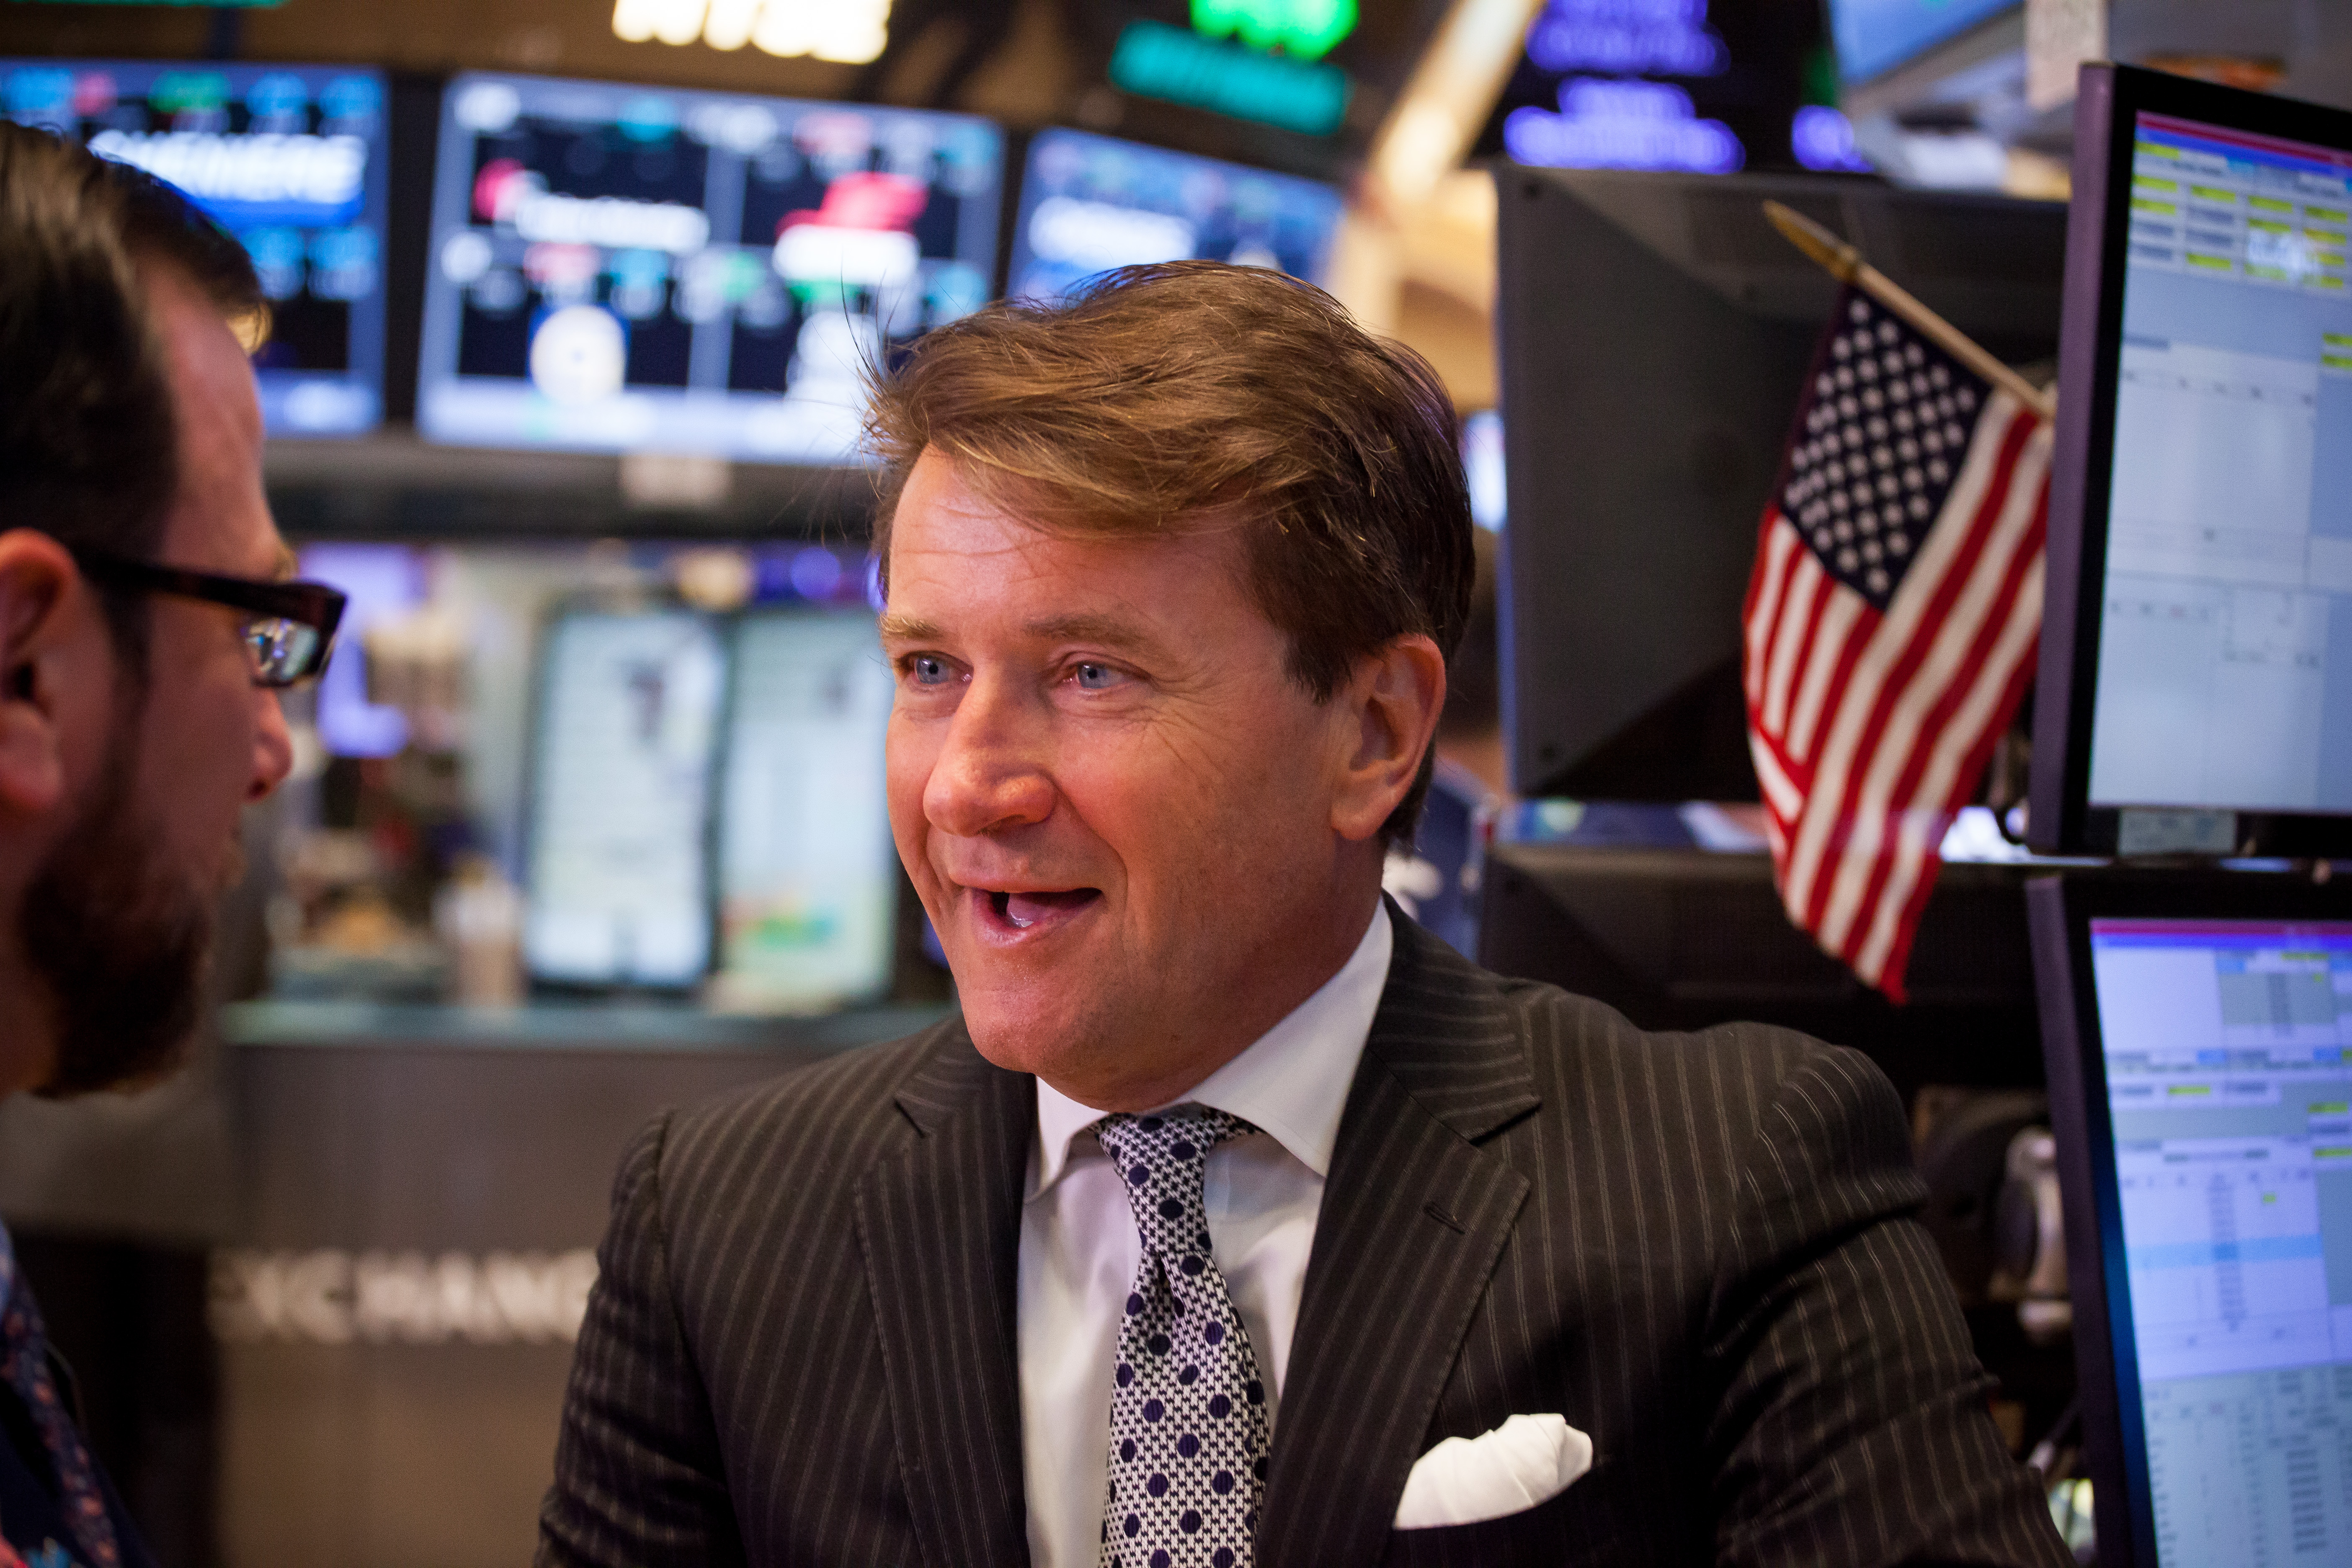 Robert Herjavec, founder and chief executive officer of the Herjavec Group, right, talks with a trader on the floor of the New York Stock Exchange (NYSE) in New York, U.S., on Friday, Jan. 13, 2017.